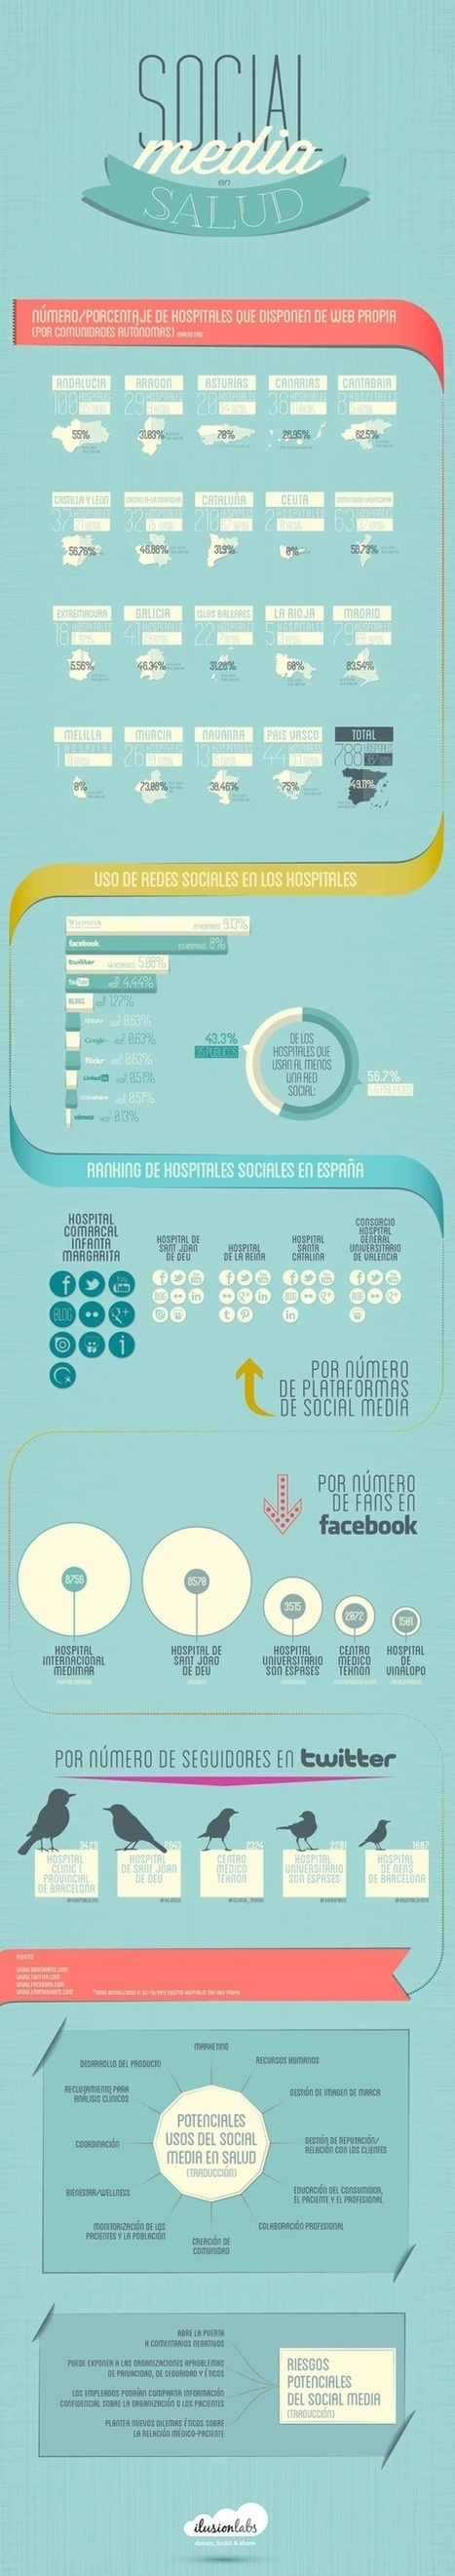 Infografía: Salud y Social Media en Hospitales. España. Vía Hospital Digital | eSalud Social Media | Scoop.it